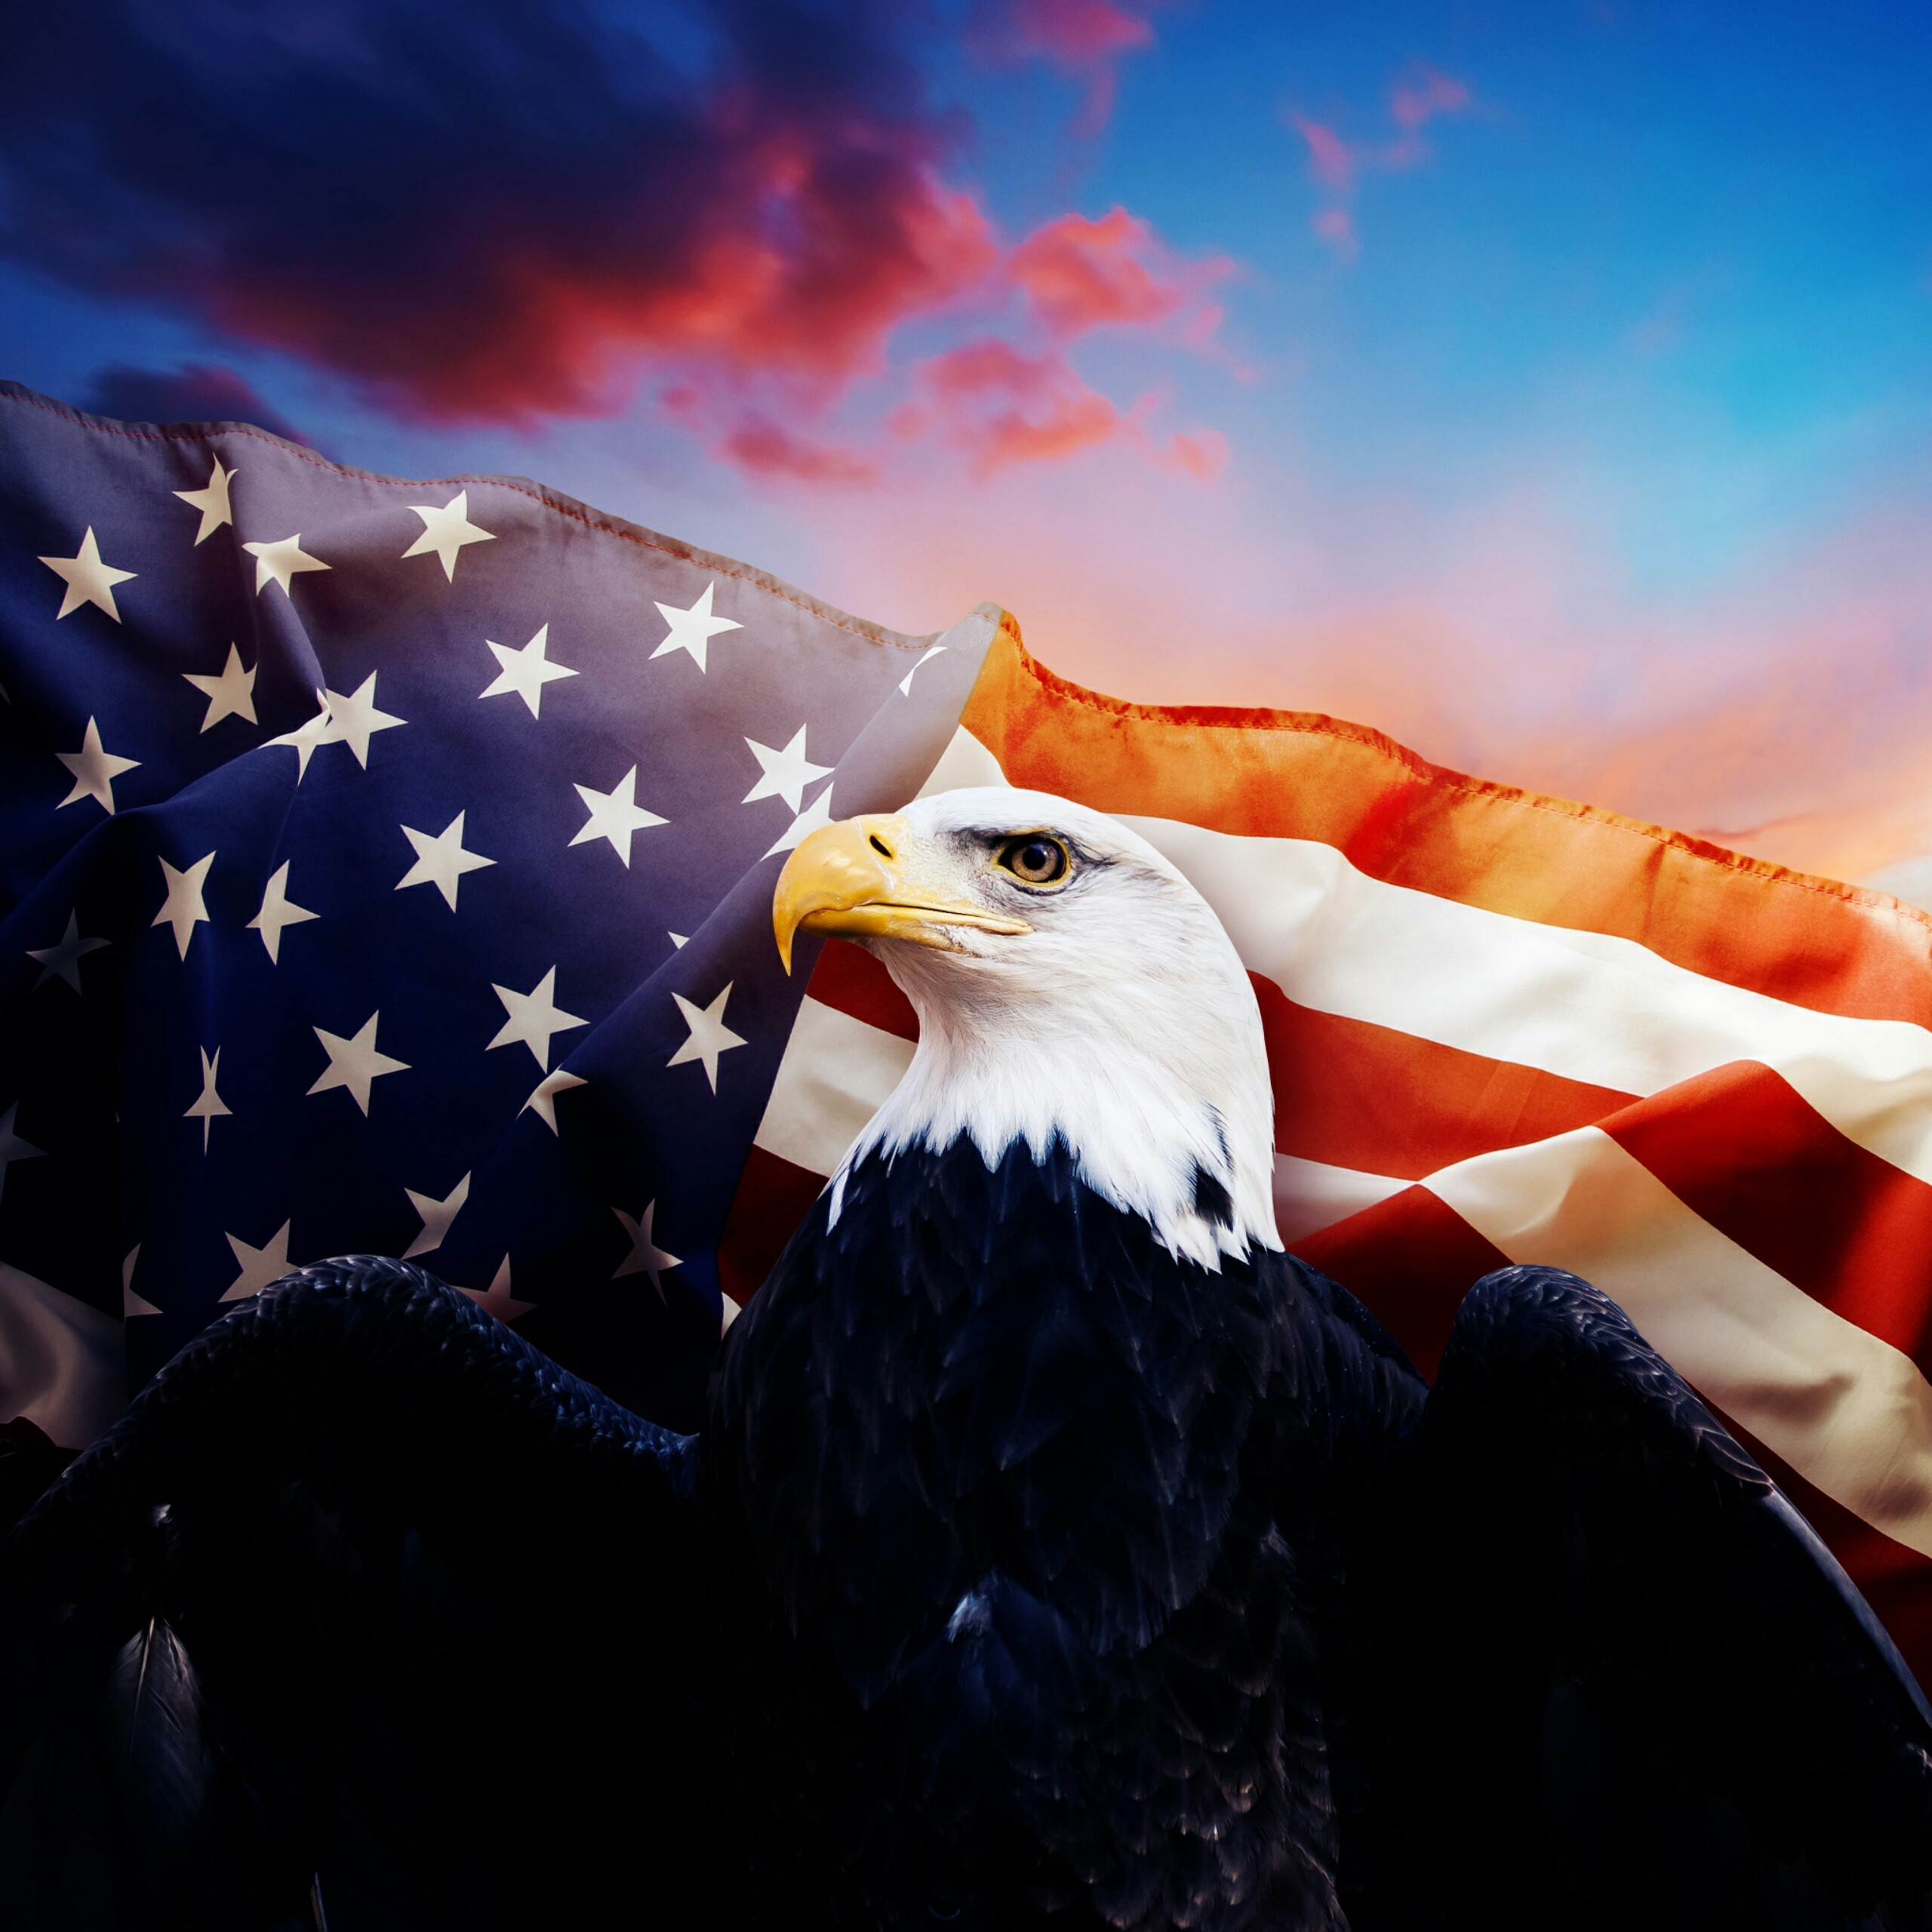 American Eagle USA Independence Day 4th July Events QHD